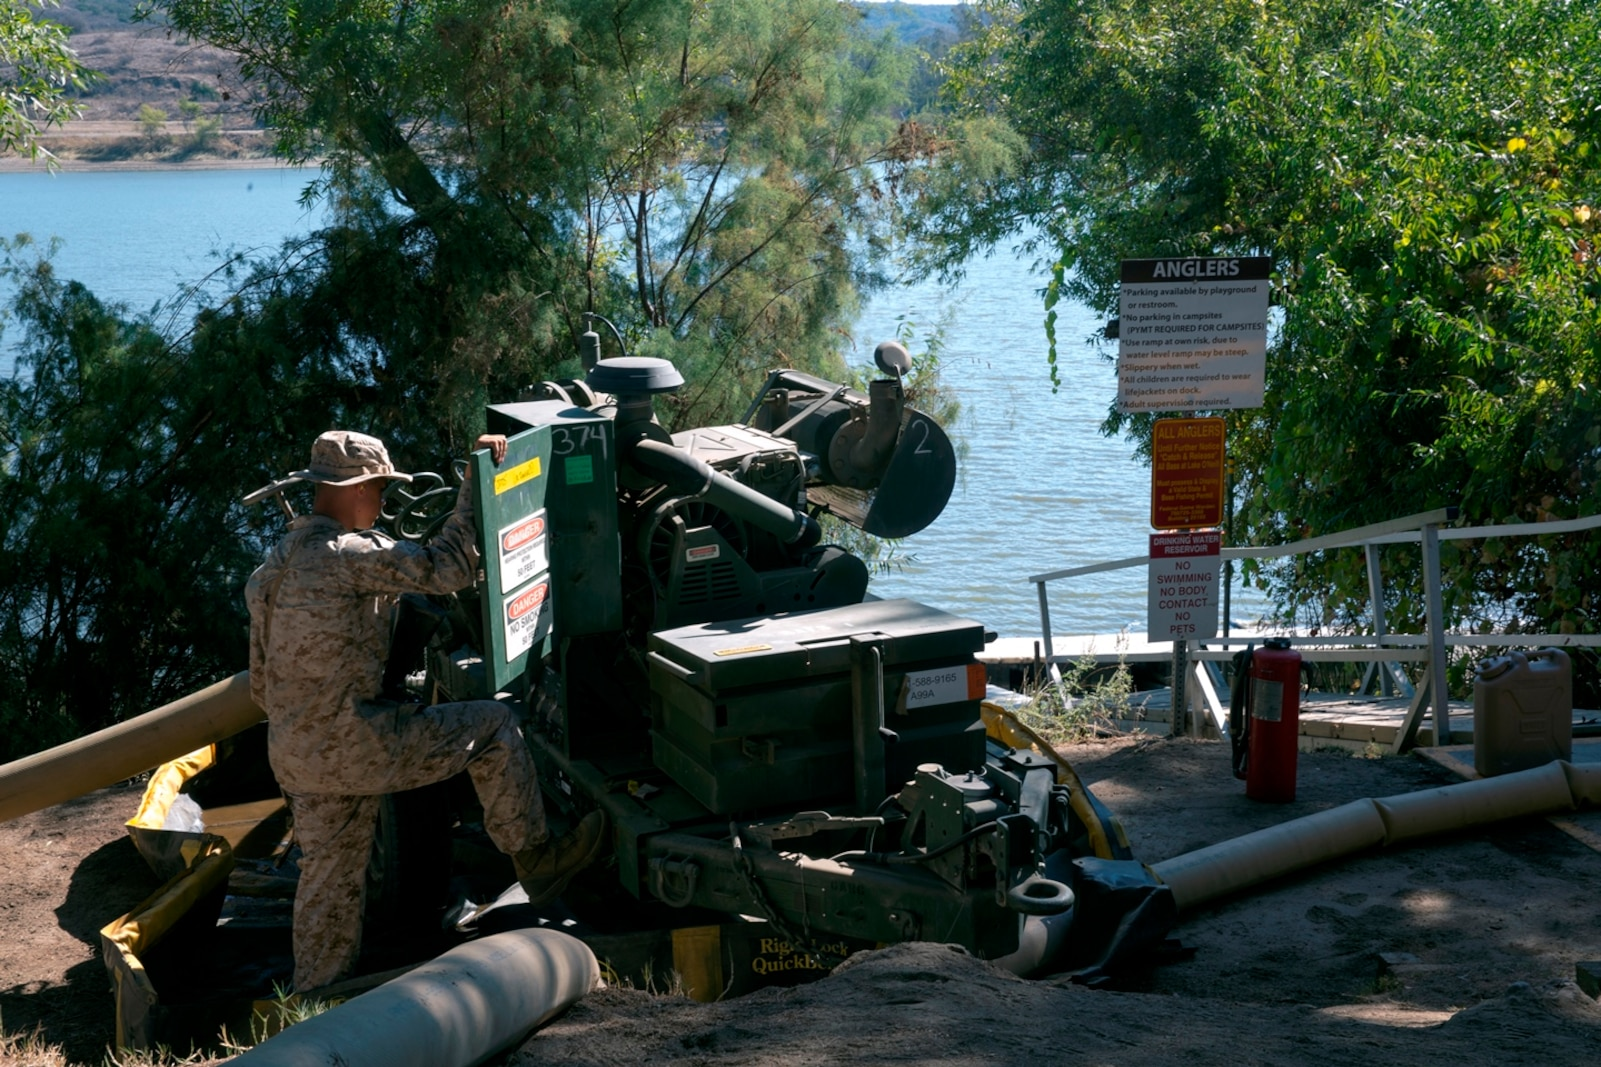 U.S. Marine Corps Pfc. Silas Thomas, from Colebrook, Ohio, a bulk fuel specialist with Bulk Fuel Company, 7th Engineer Support Battalion, inspects one of the 600-gallon-per-minute pumps while it draws water from Lake O'Neill to take to the 200,000 gallon storage site during the bulk fuel Marine Corps Combat Readiness Evaluation on Camp Pendleton, Calif., Oct. 12, 2016. By using water from Lake O'Neill, the Marines were able to simulate the process of pumping fuel from ship to shore in an expeditionary environment.